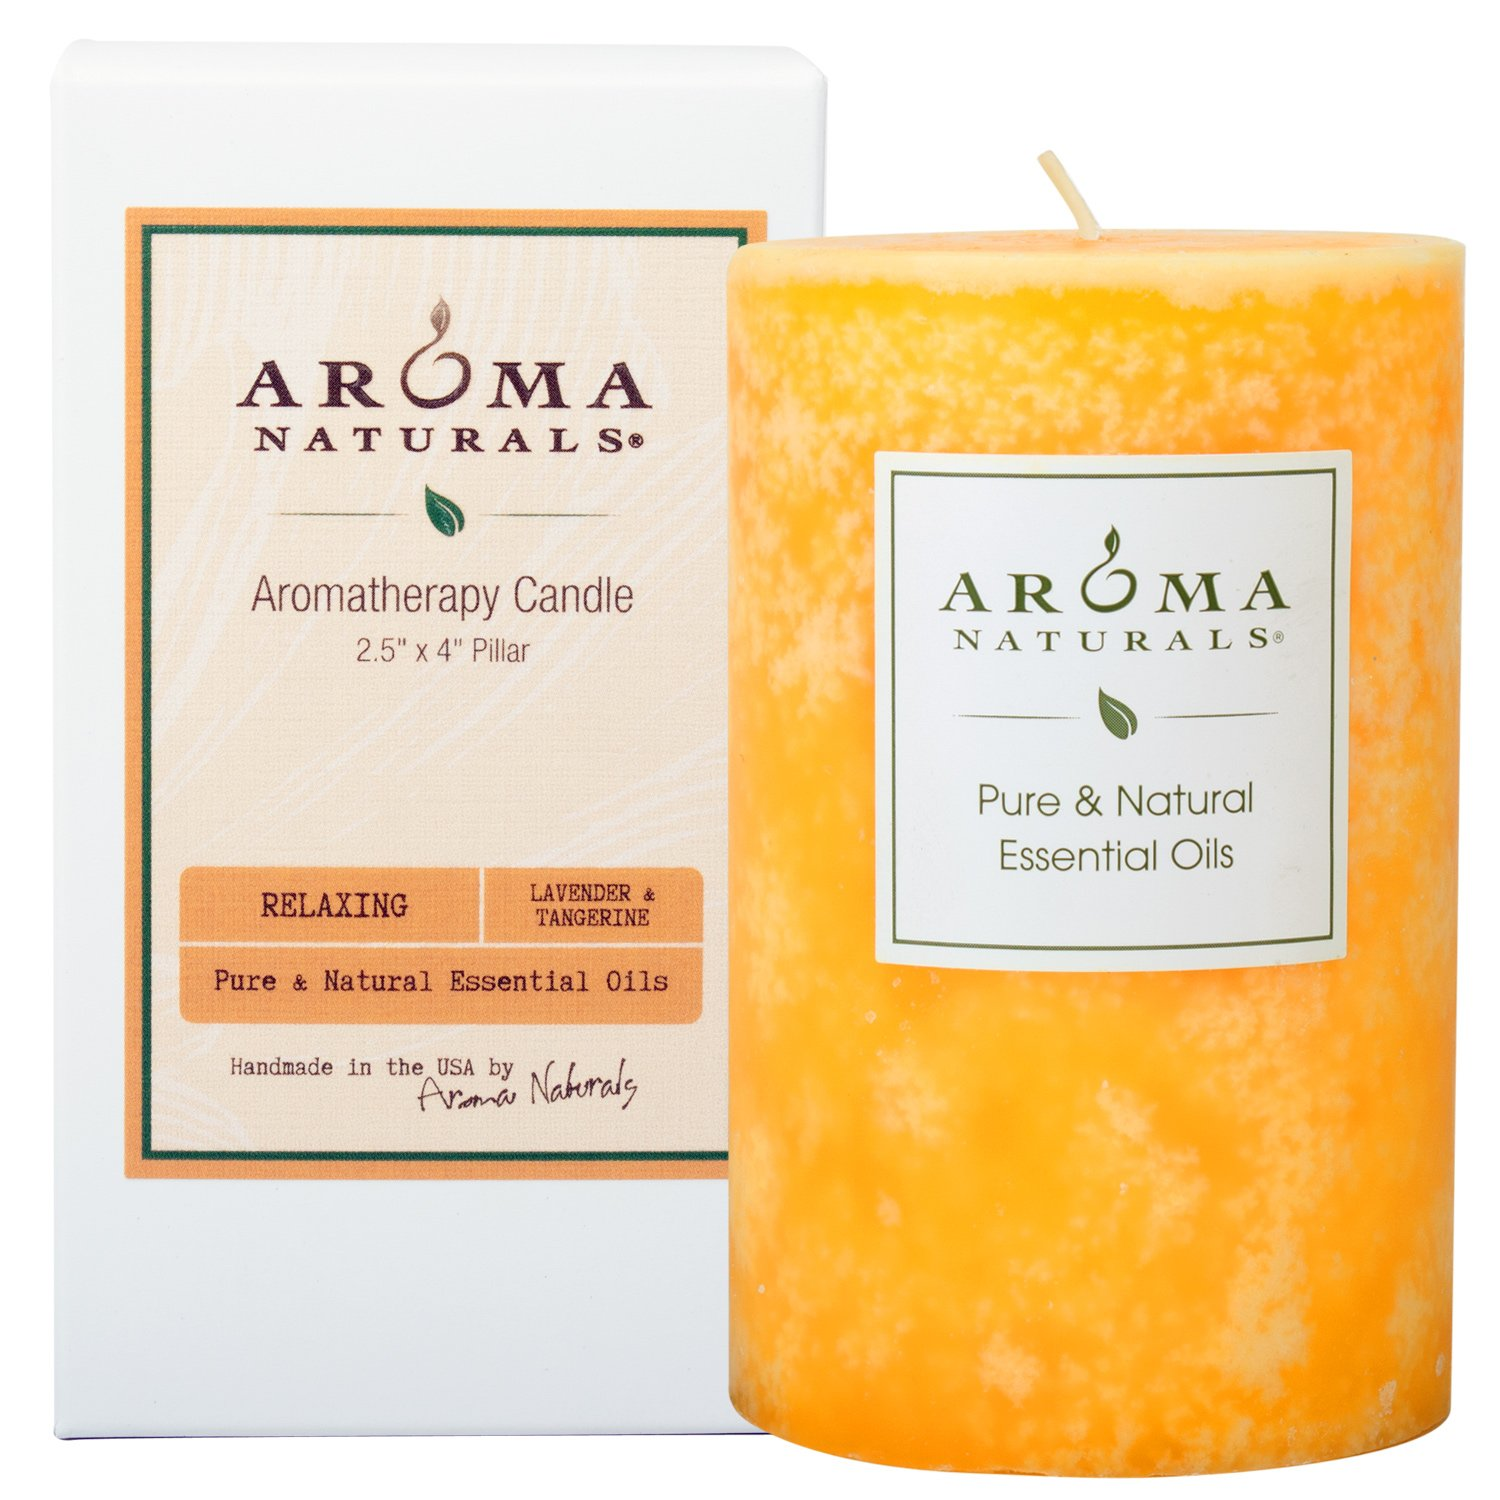 Aroma Naturals Essential Oil Lavender & Tangerine Scented Pillar Candle, Relaxing, 2.5 inch x 4 inch: Beauty